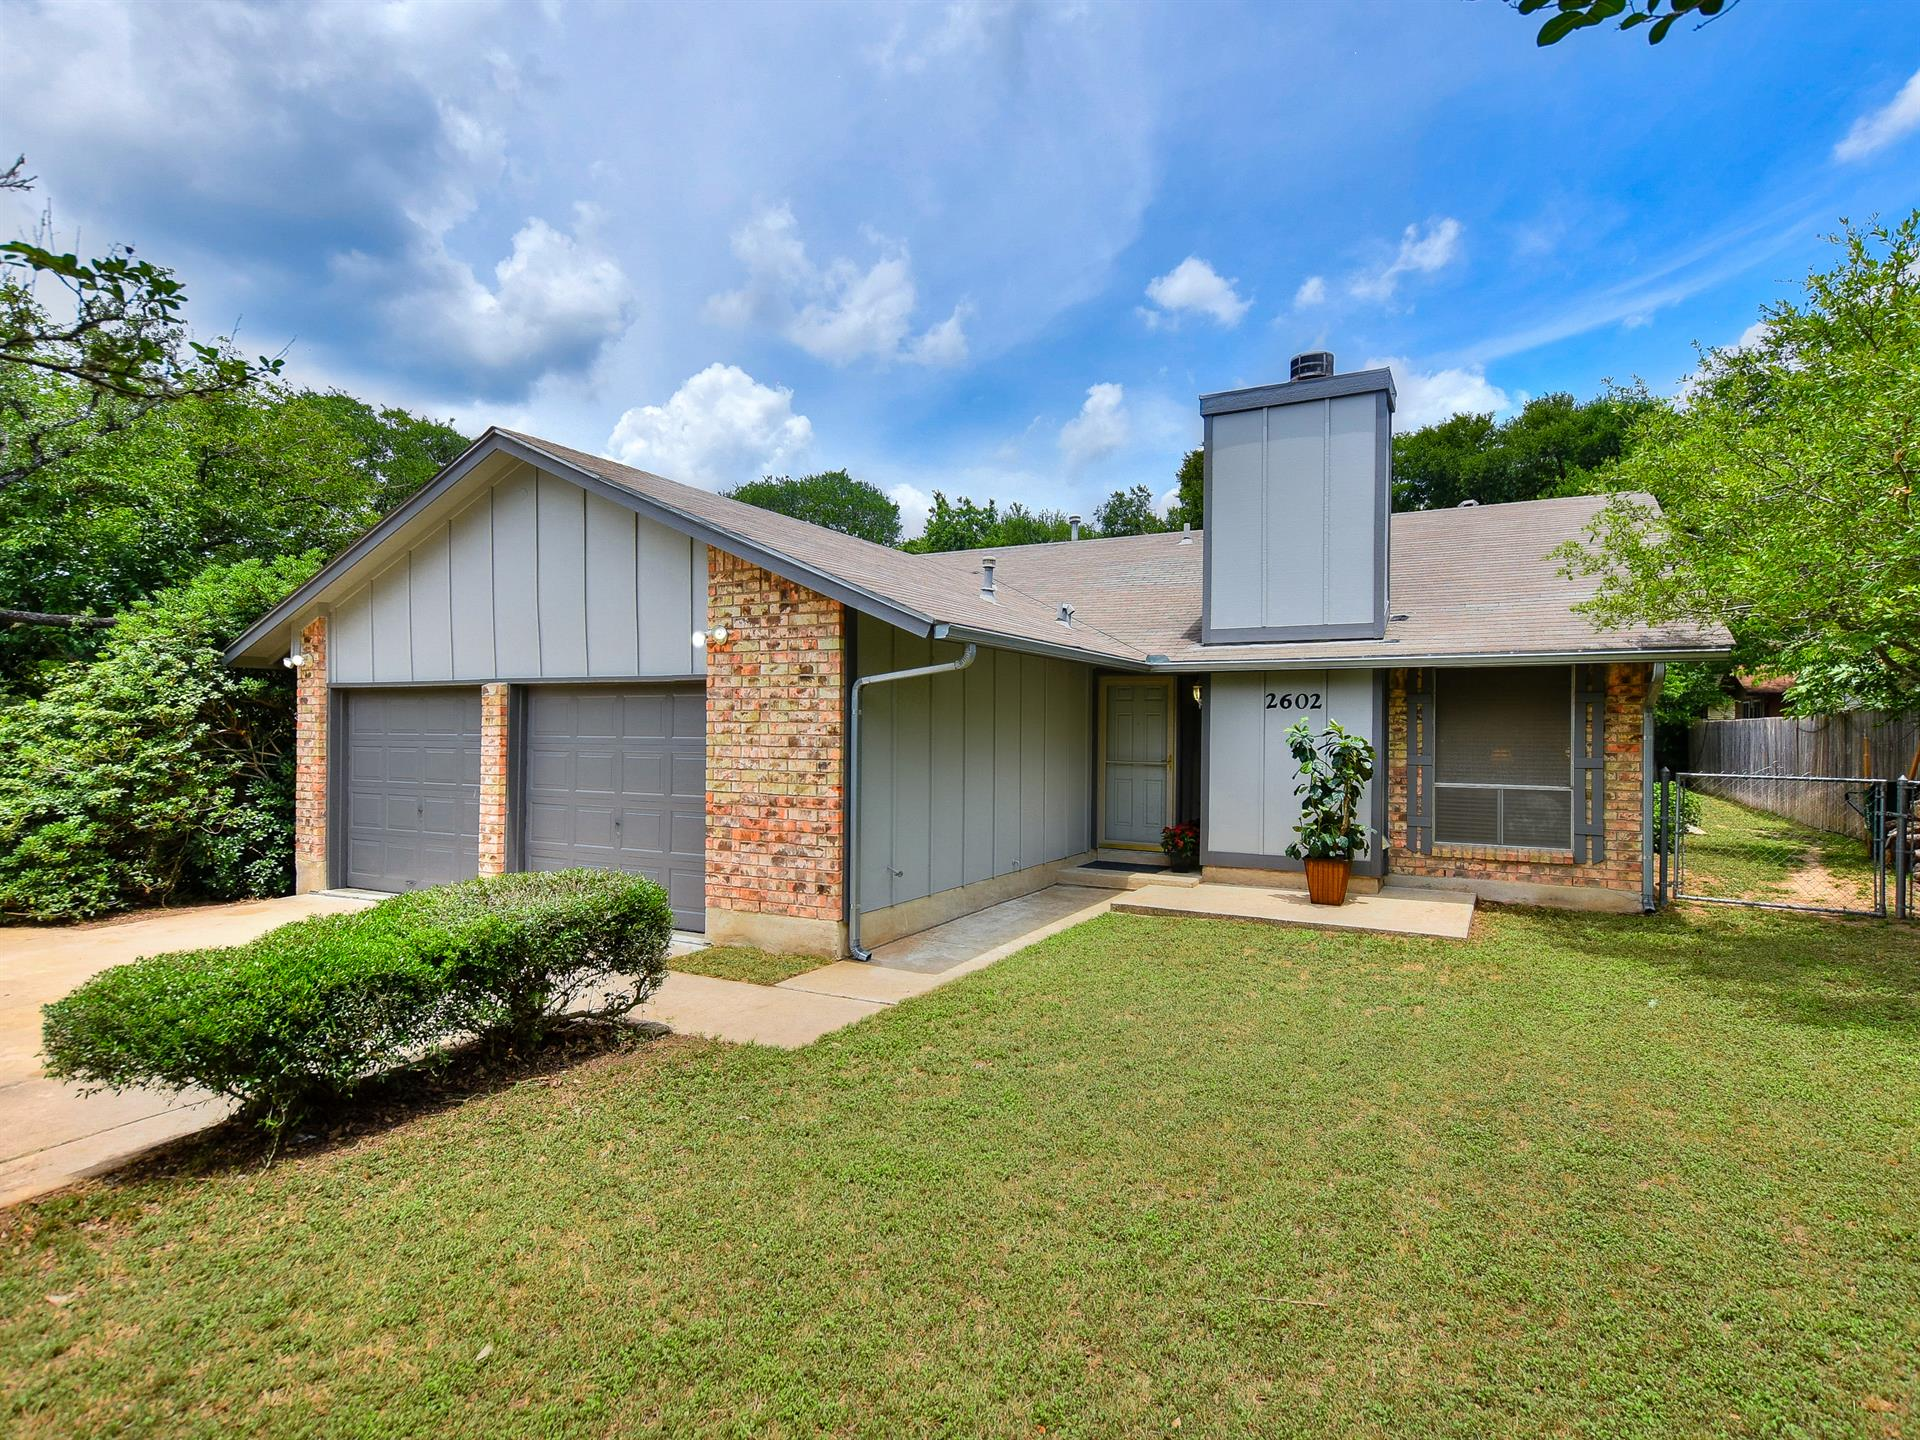 Additional photo for property listing at 2602 Hidden Oaks Drive 2602 Hidden Oaks Drive Austin, Texas 78745 Estados Unidos